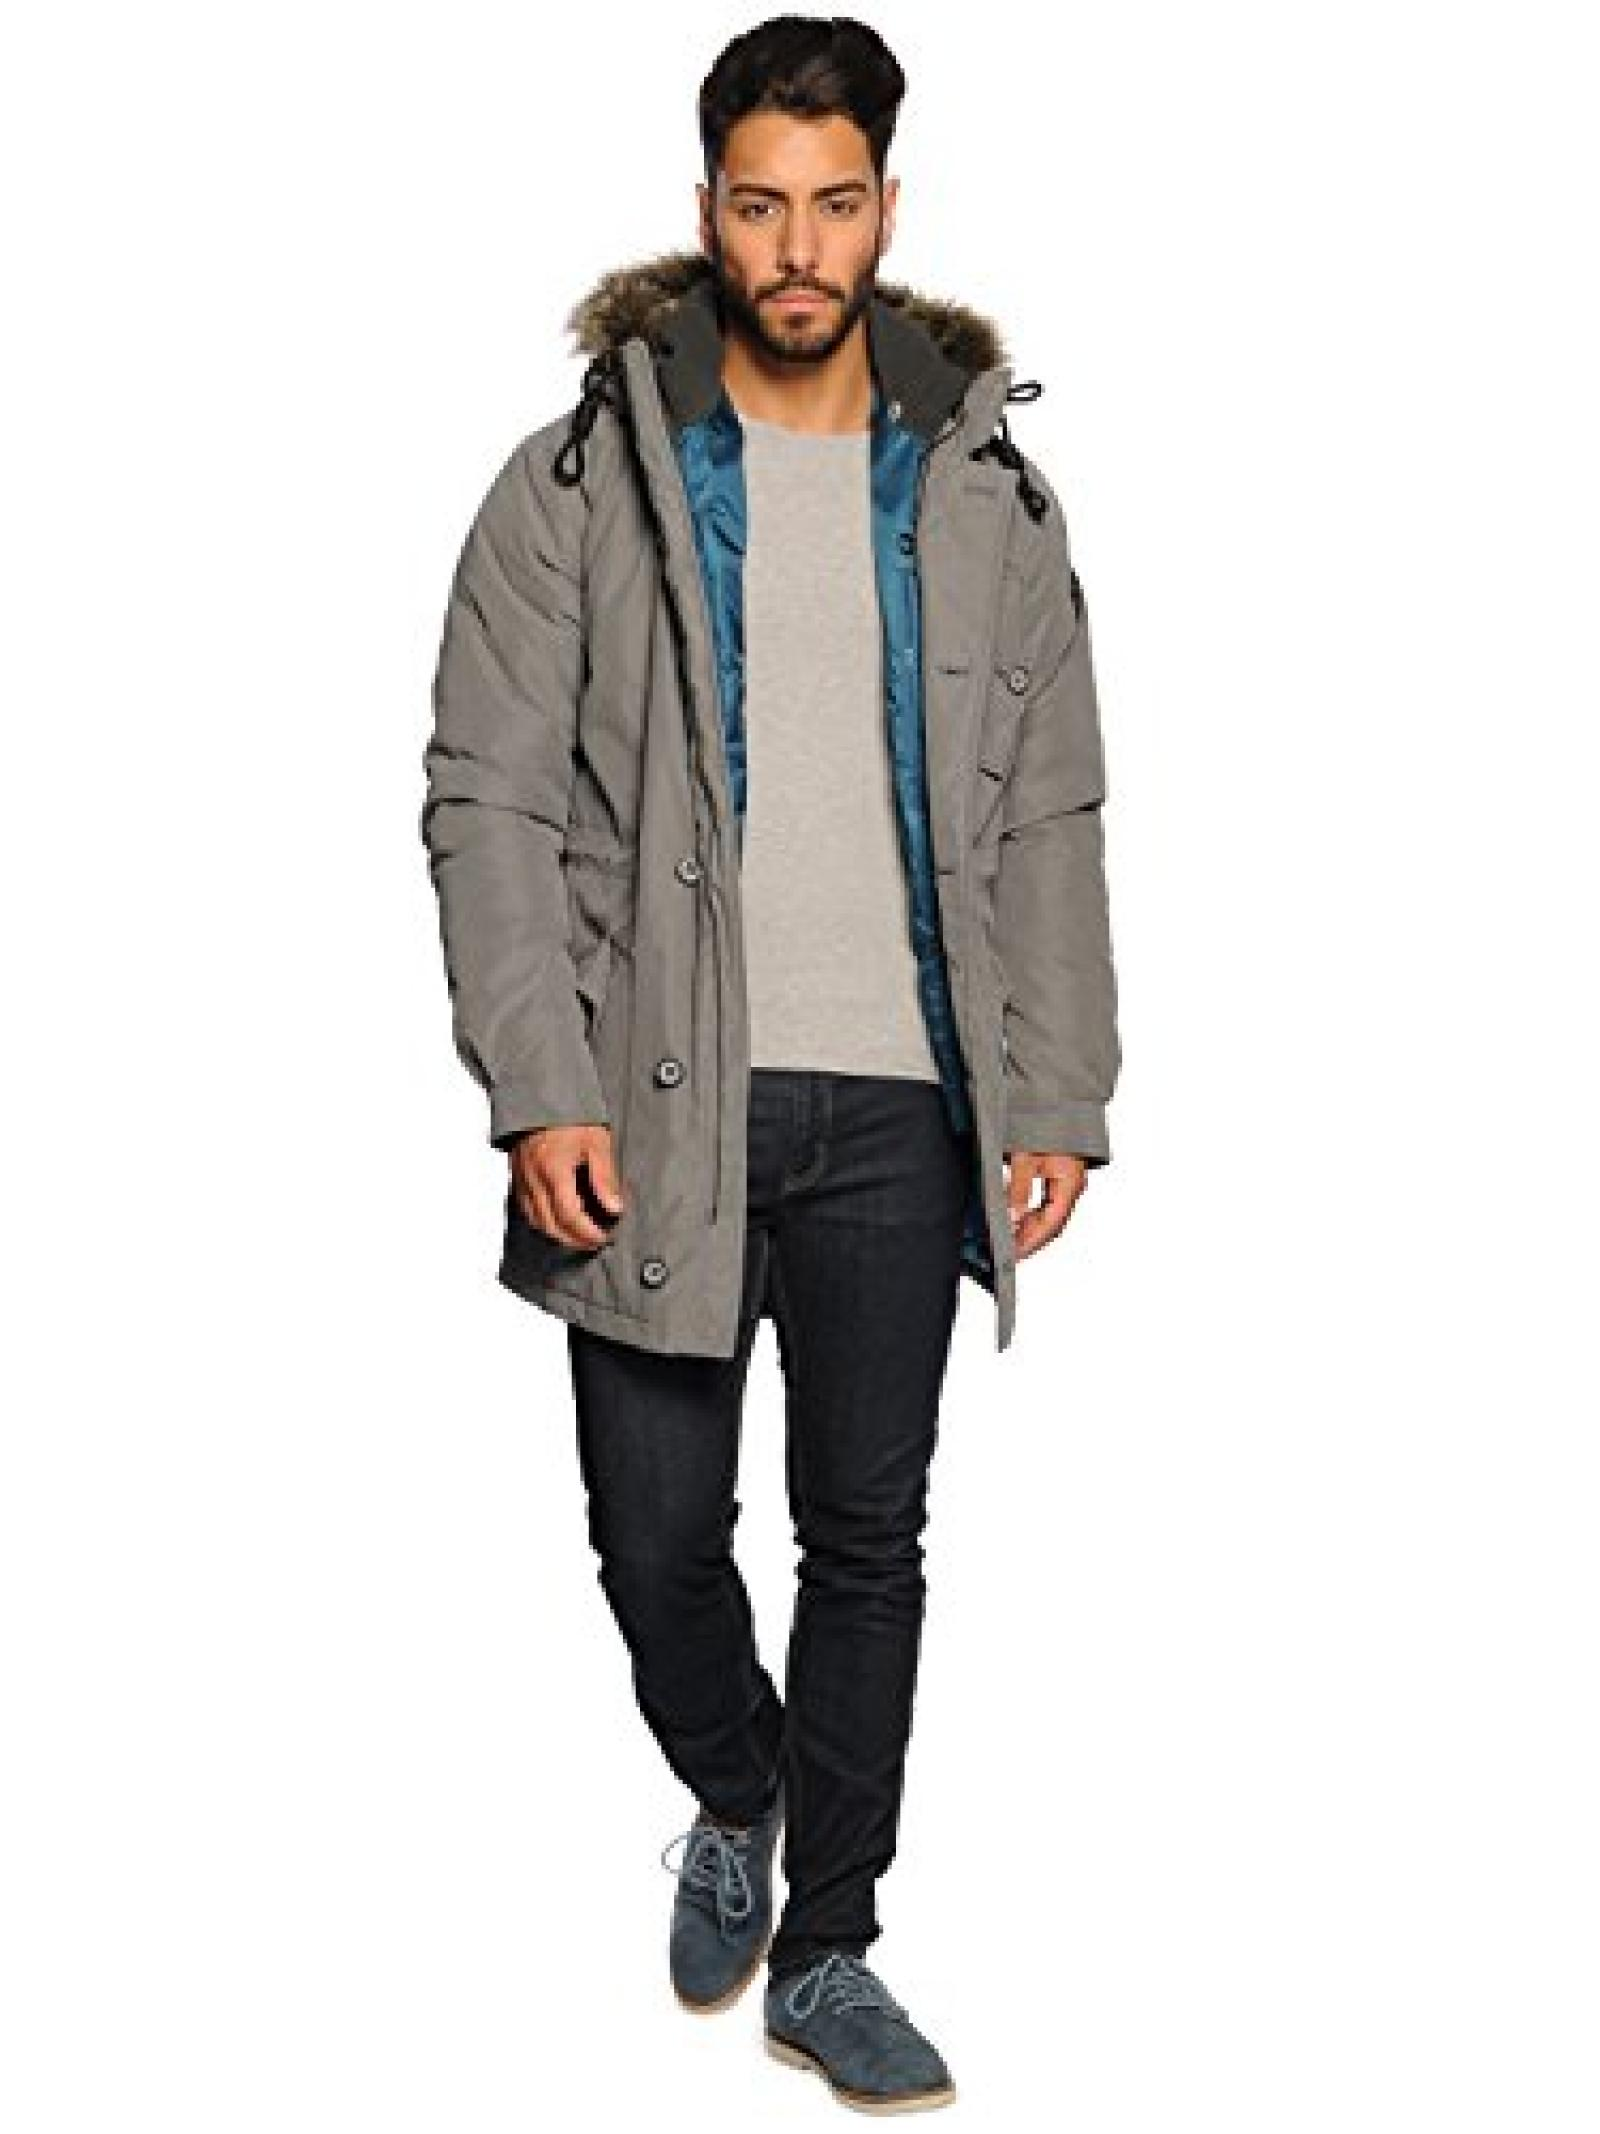 ONeill ADV All Conditions Parka